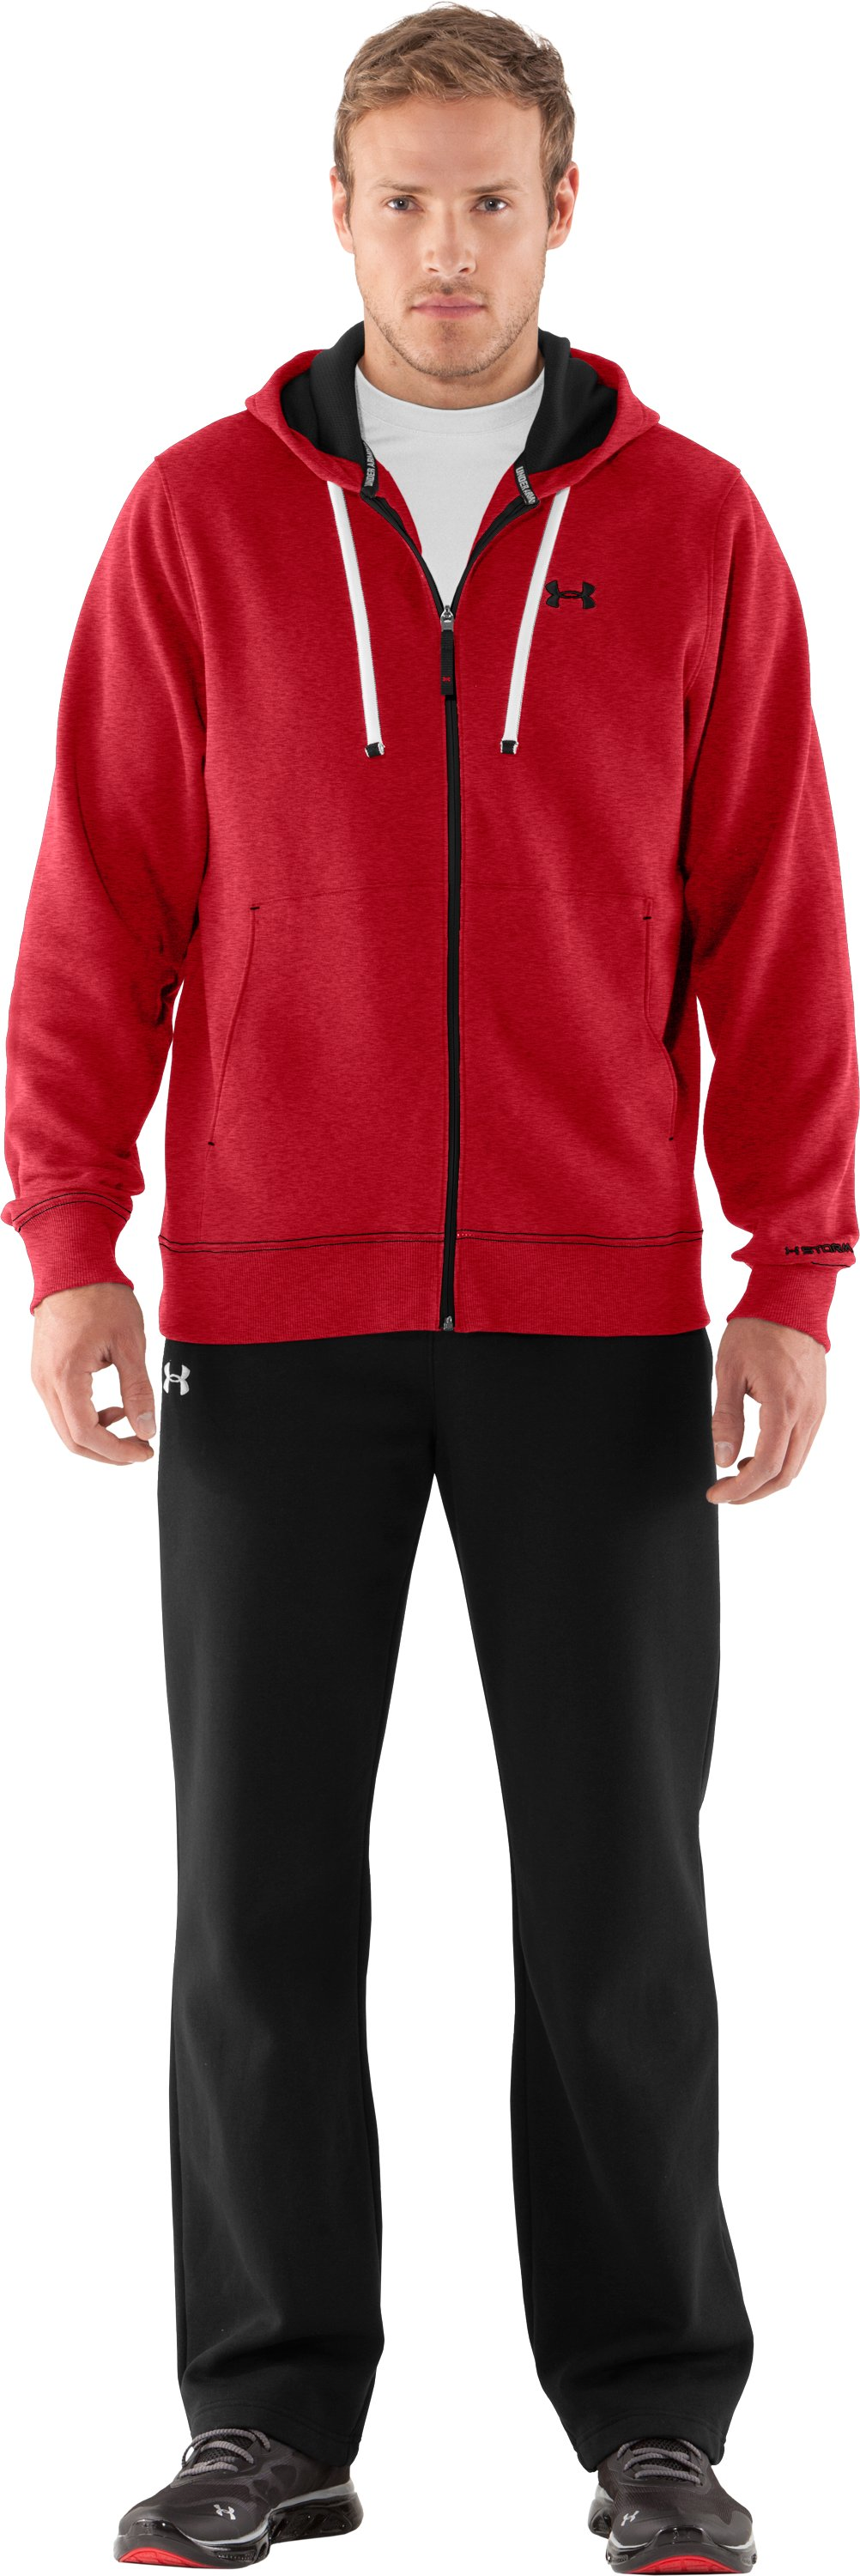 Men's Charged Cotton® Storm Transit Full-Zip Hoodie, Red, zoomed image